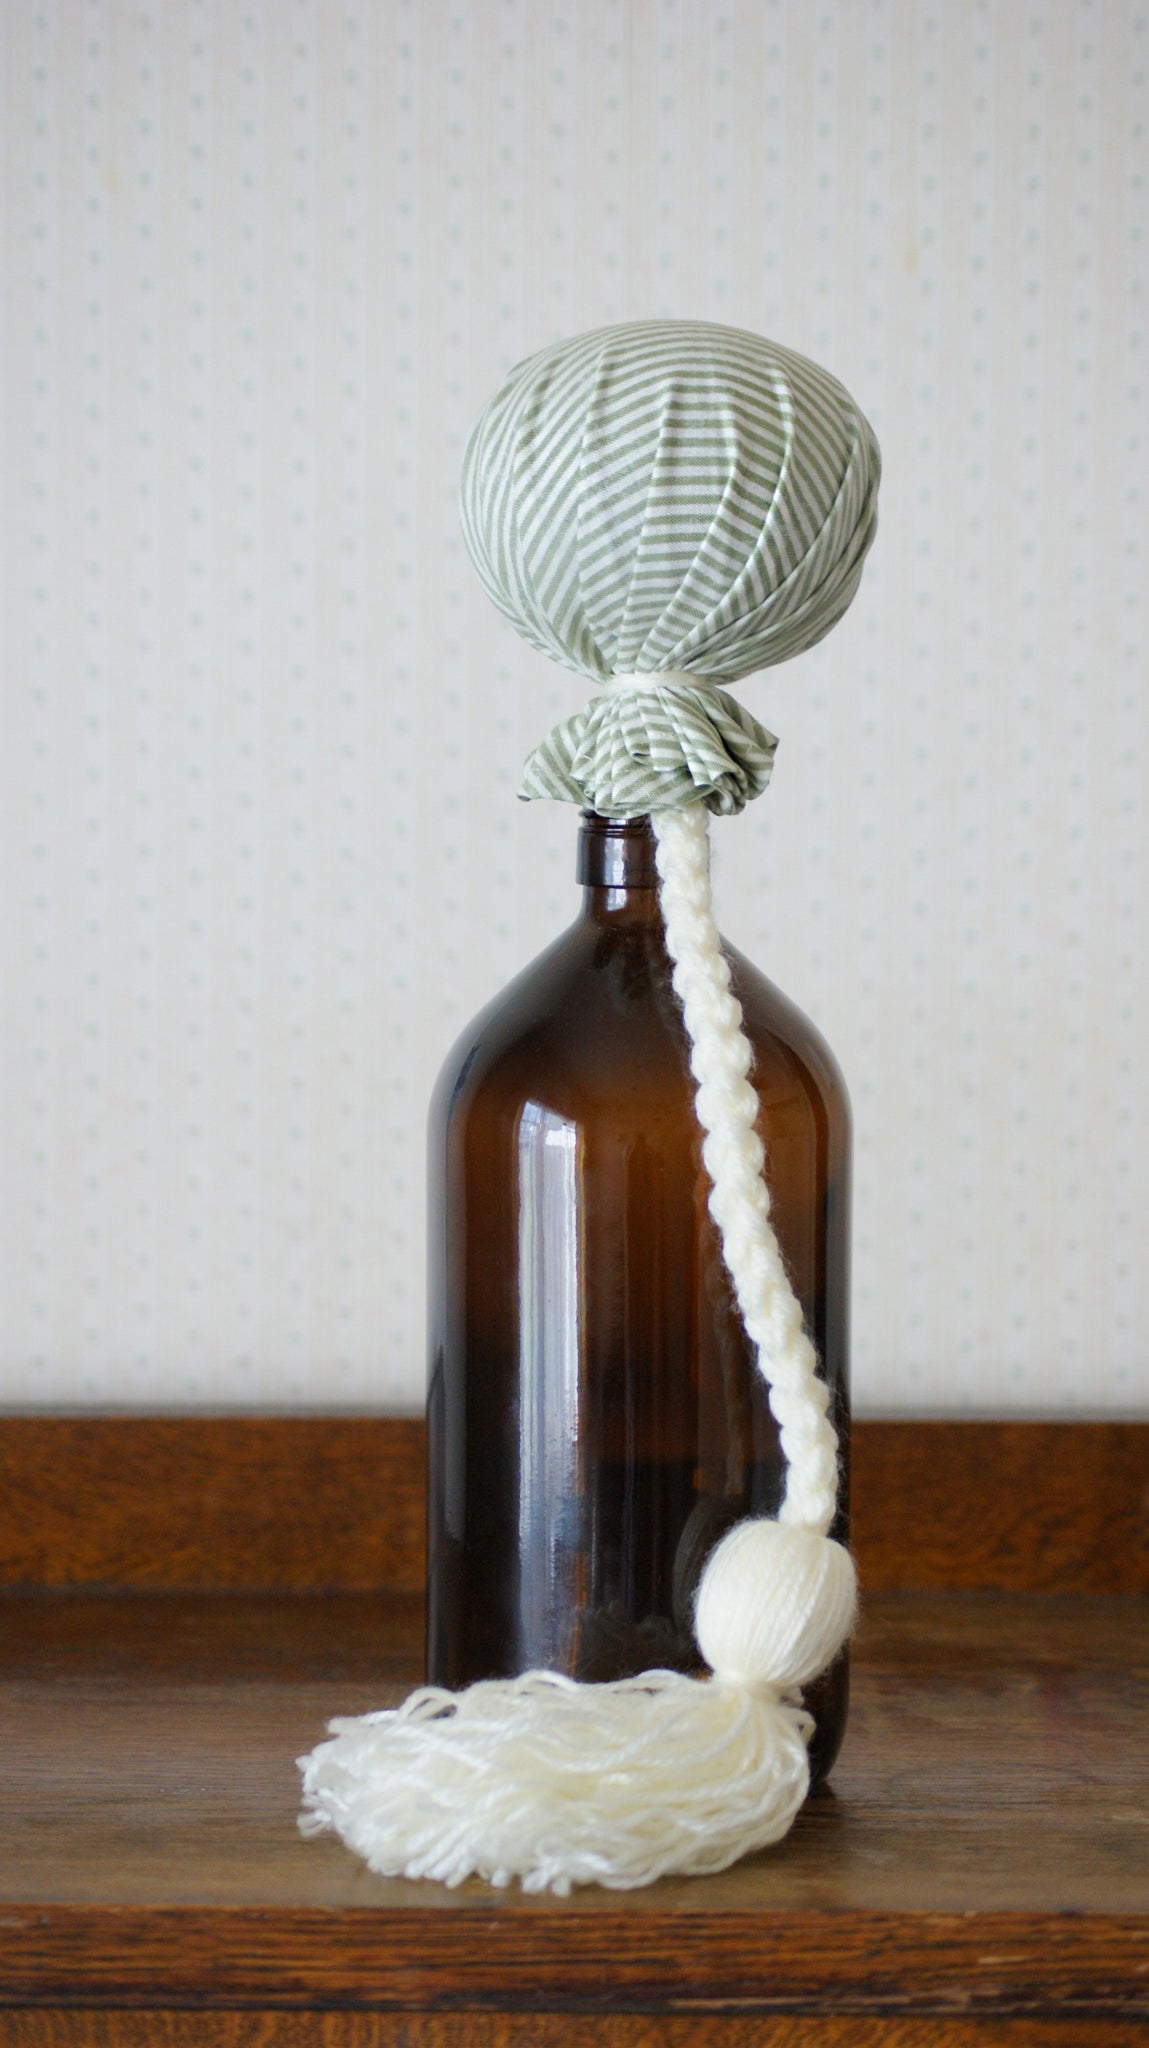 Handcrafted poi made in NZ. The poi is covered in a vintage style green and cream striped cotton fabric.